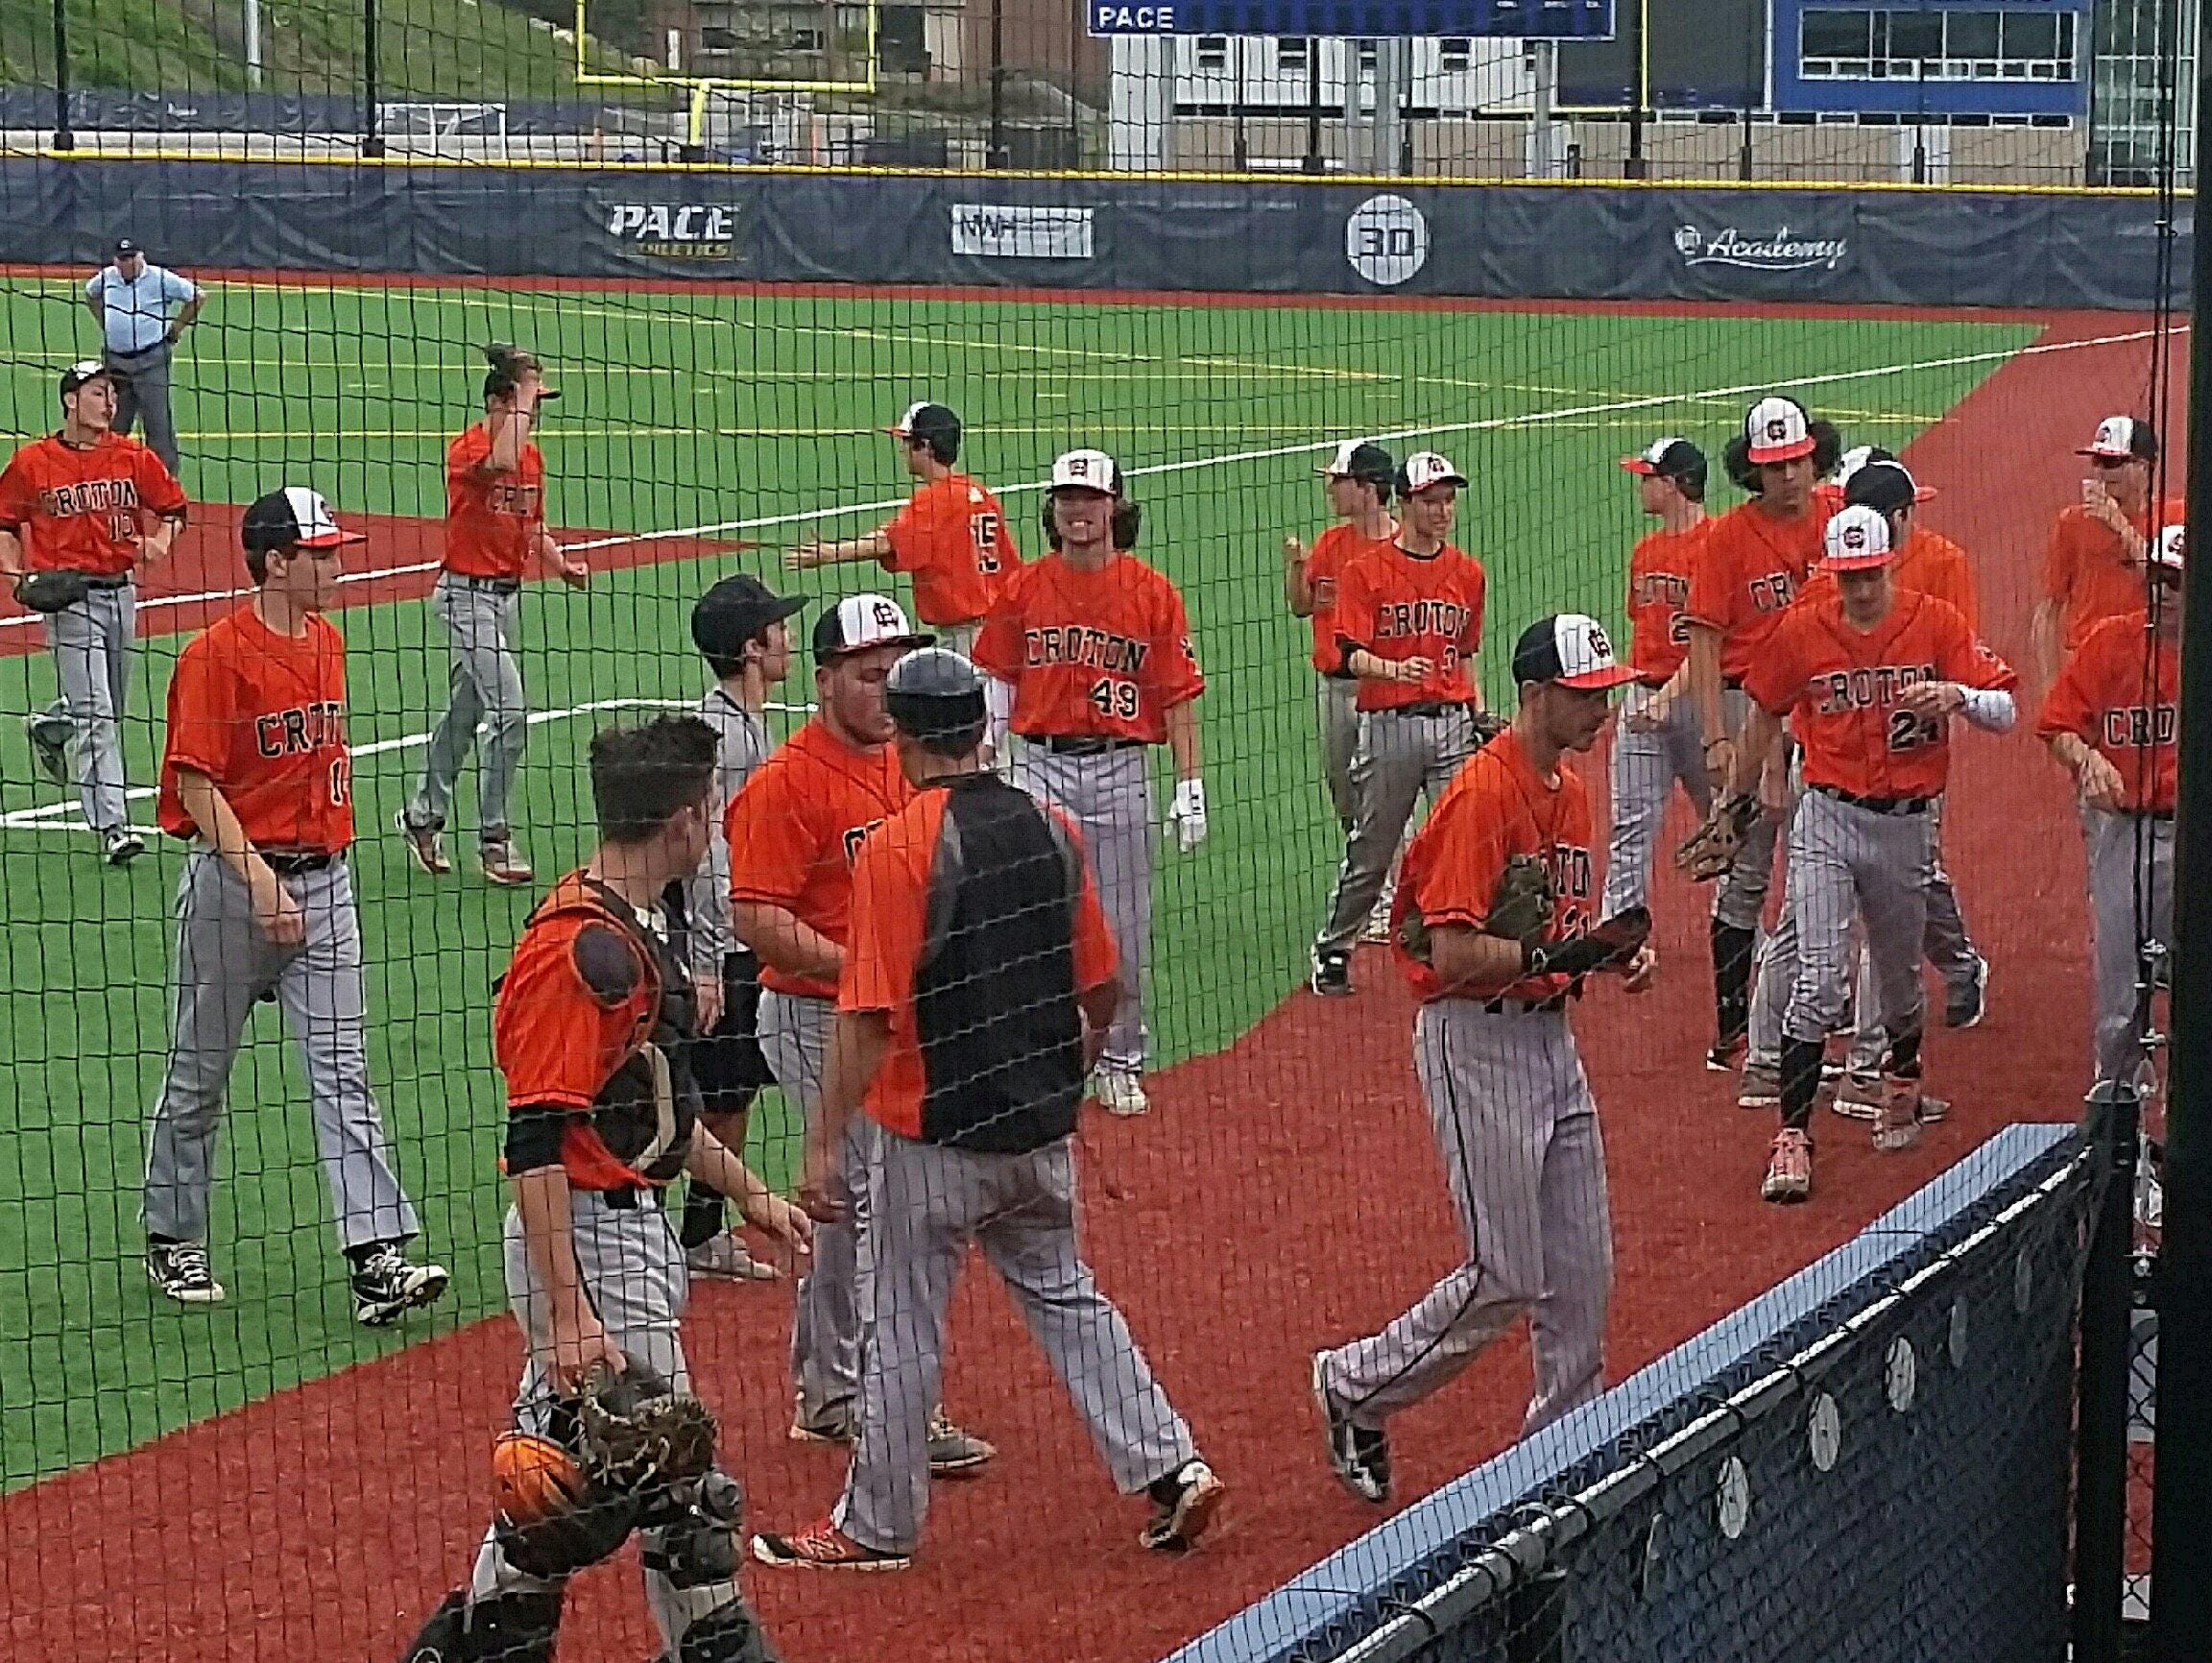 Croton-Harmon celebrates after eliminating Pleasantville in a Class B quarterfinal at Pace University on Tuesday.